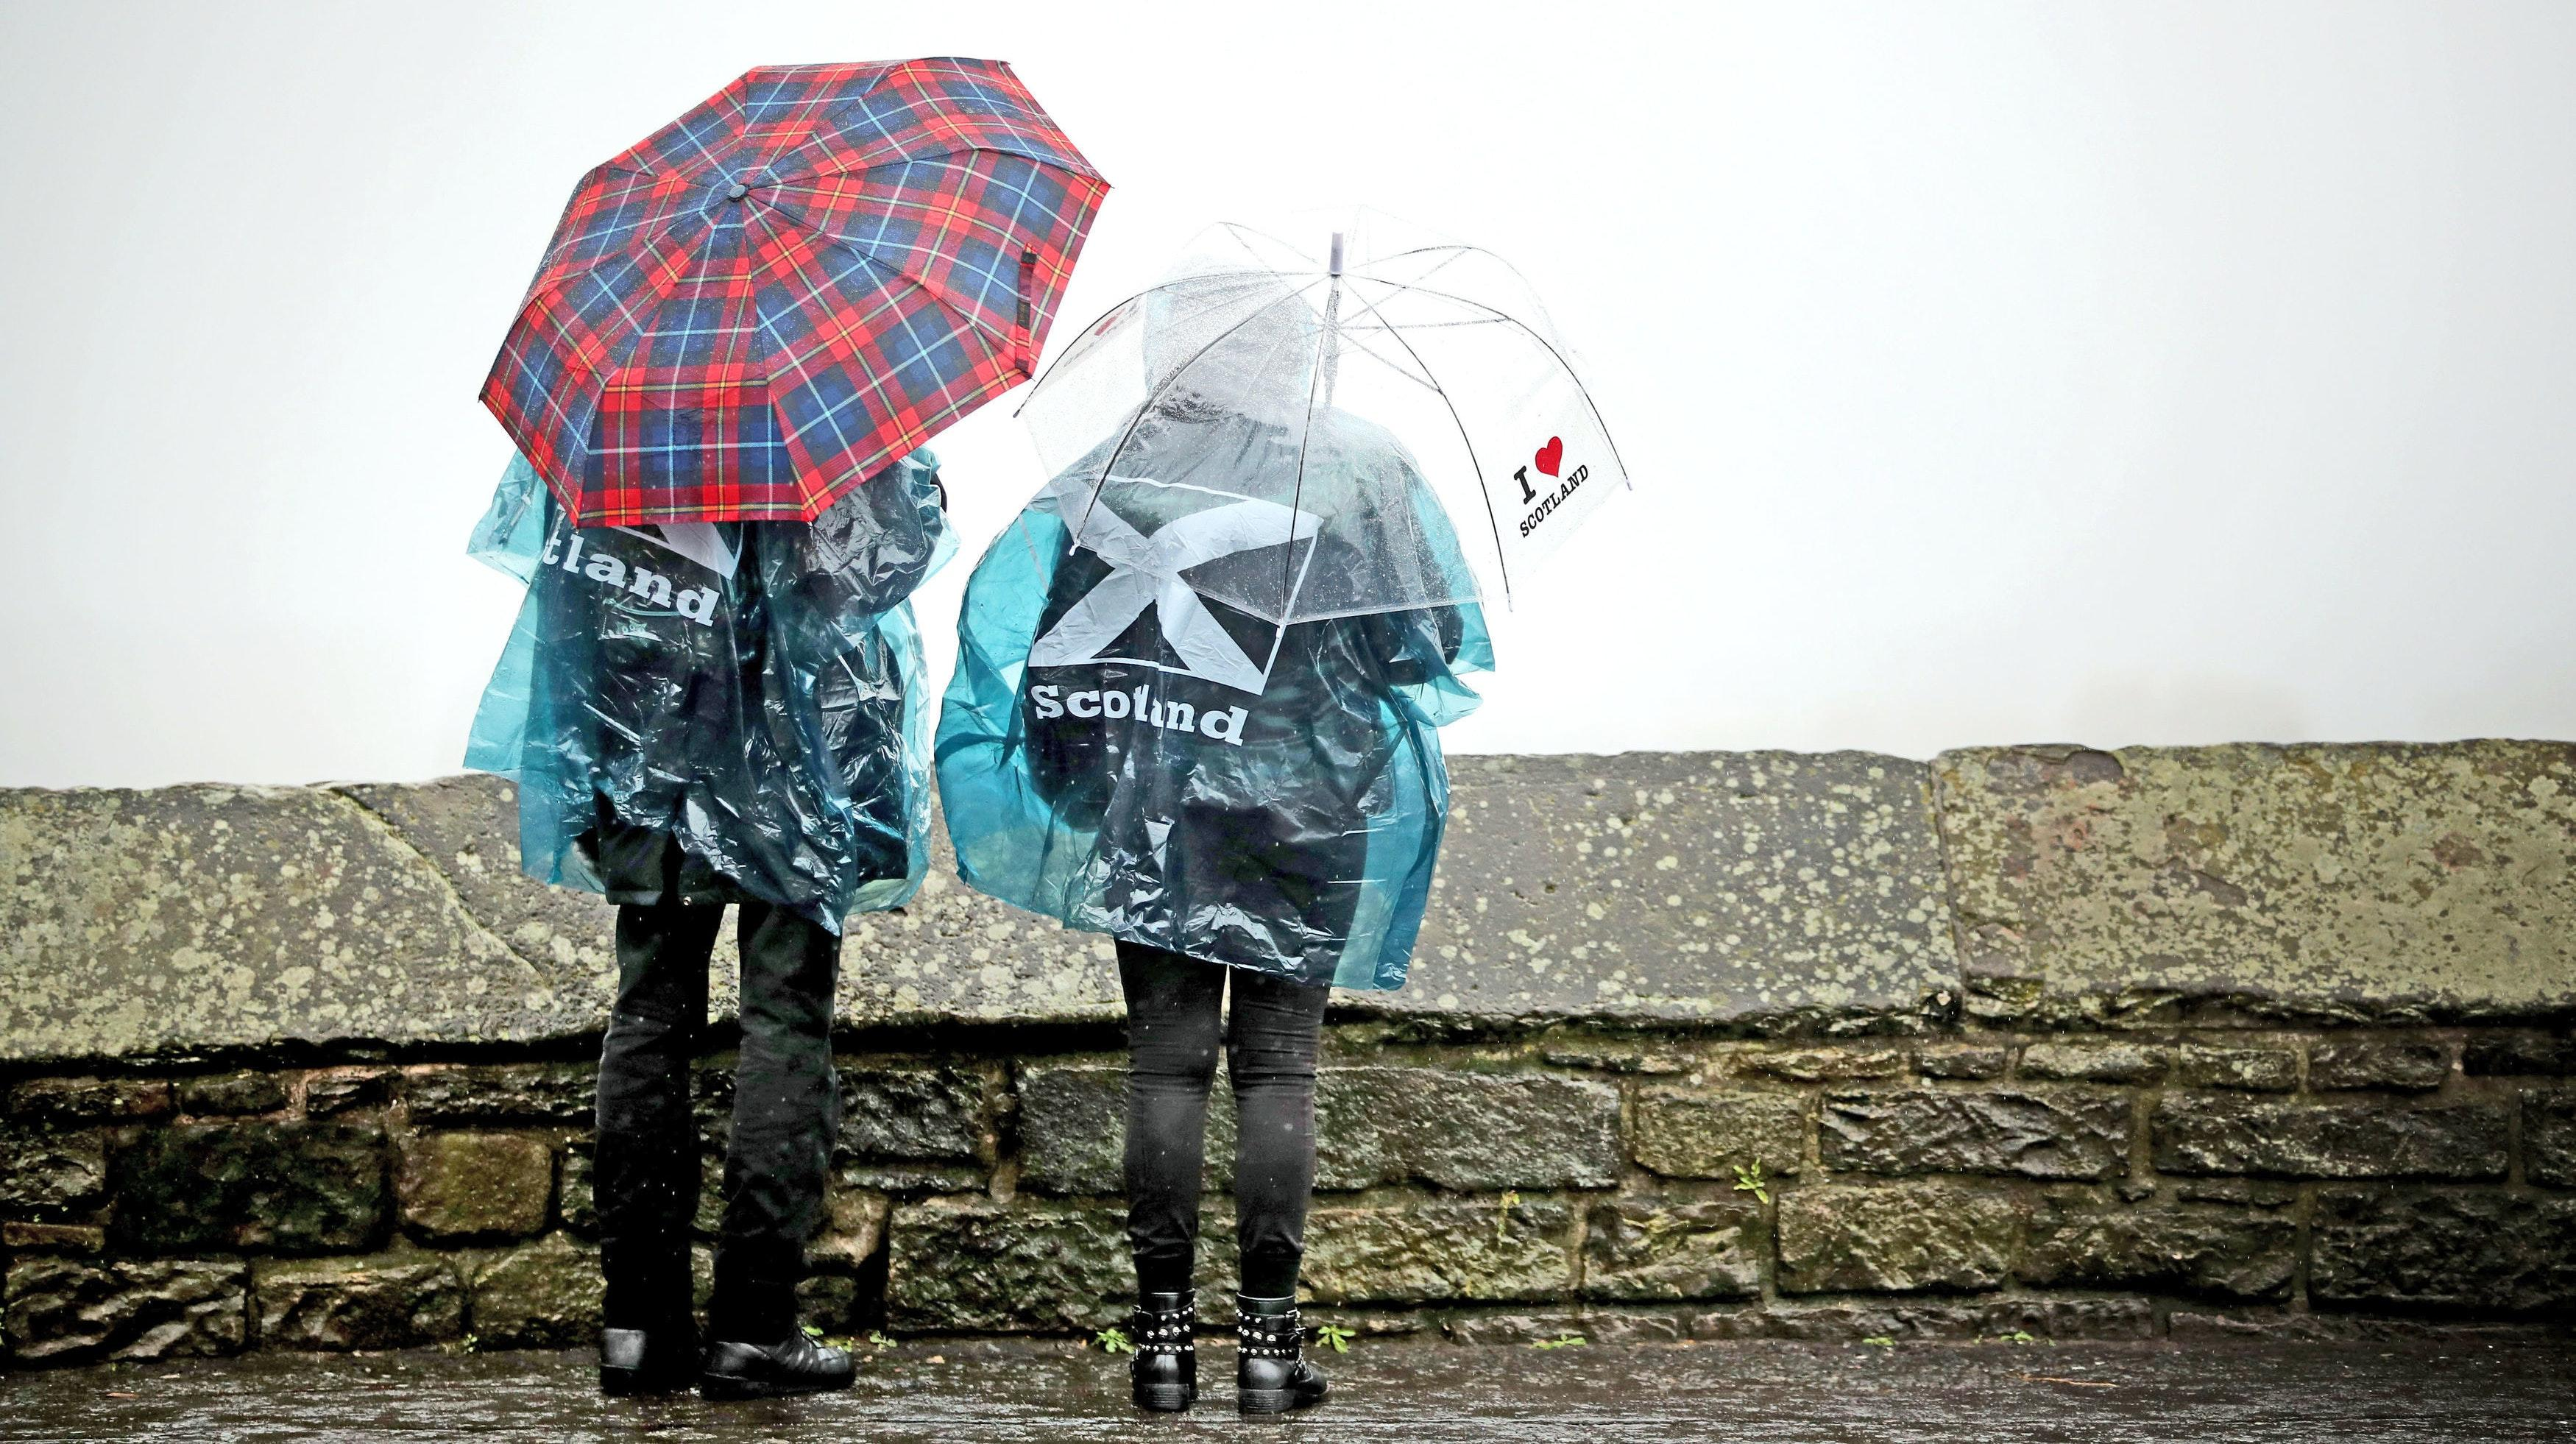 More dreich than braw – 'most iconic Scots word' revealed